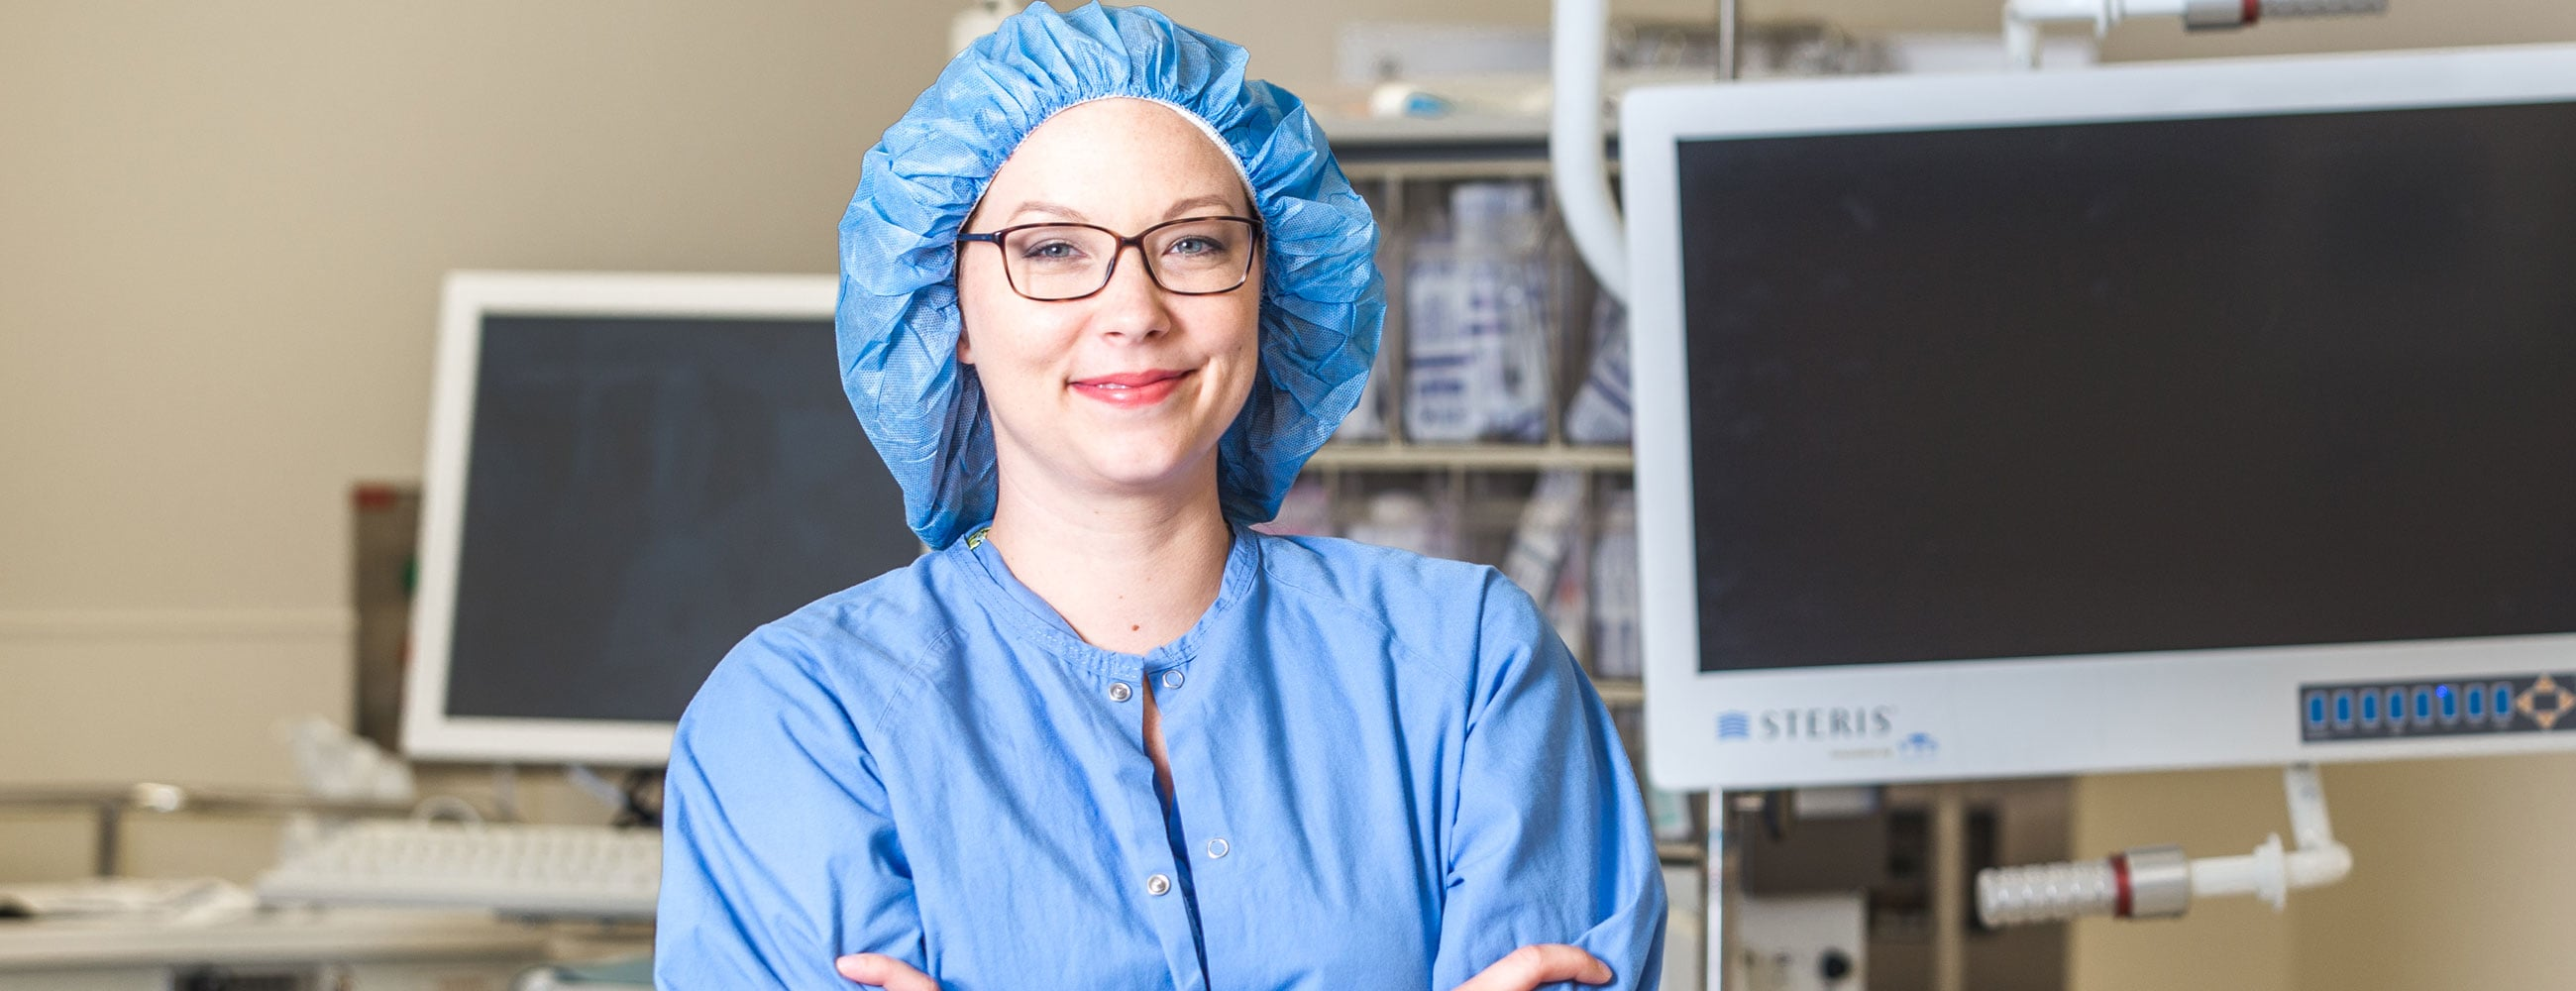 Surgical Services | Roane Medical Center